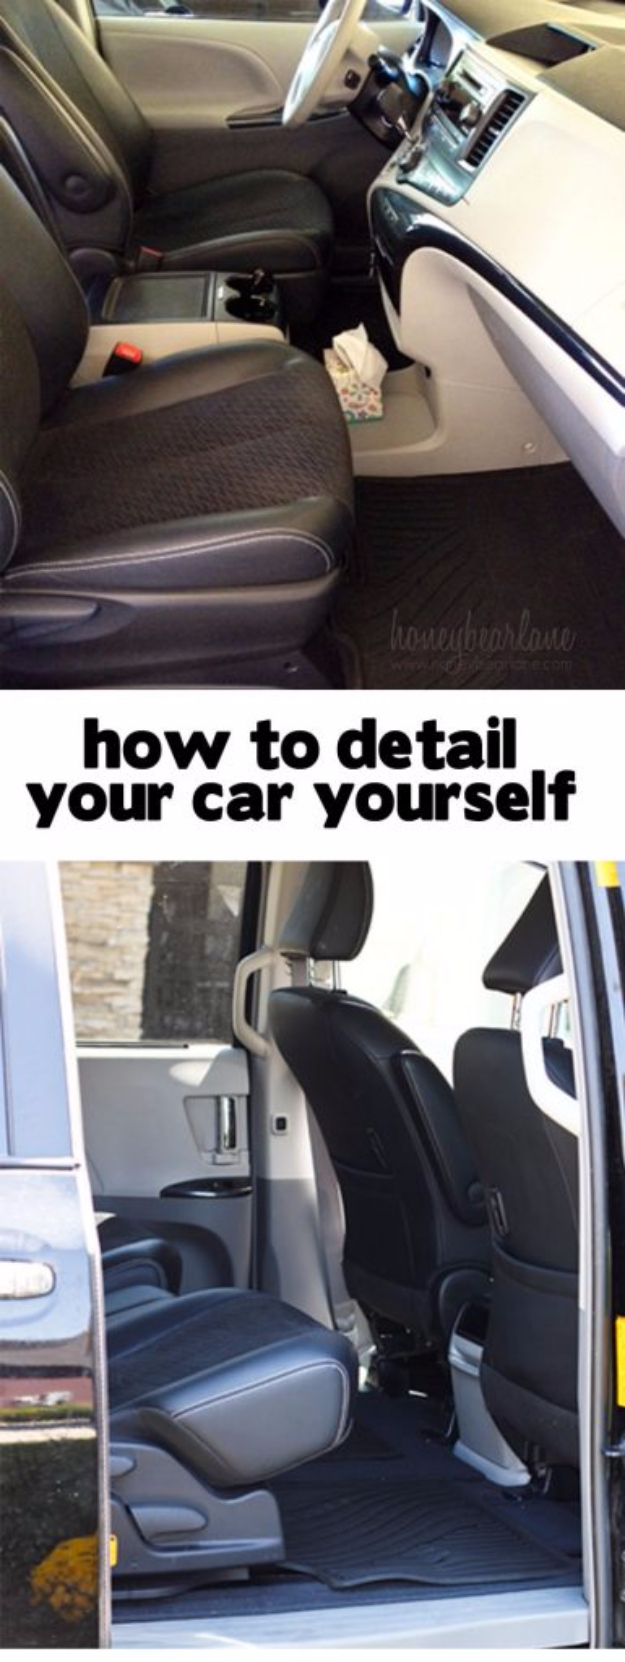 DIY Car Accessories and Ideas for Cars - Detail Your Car Yourself - Interior and Exterior, Seats, Mirror, Seat Covers, Storage, Carpet and Window Cleaners and Products - Decor, Keys and Iphone and Tablet Holders - DIY Projects and Crafts for Women and Men